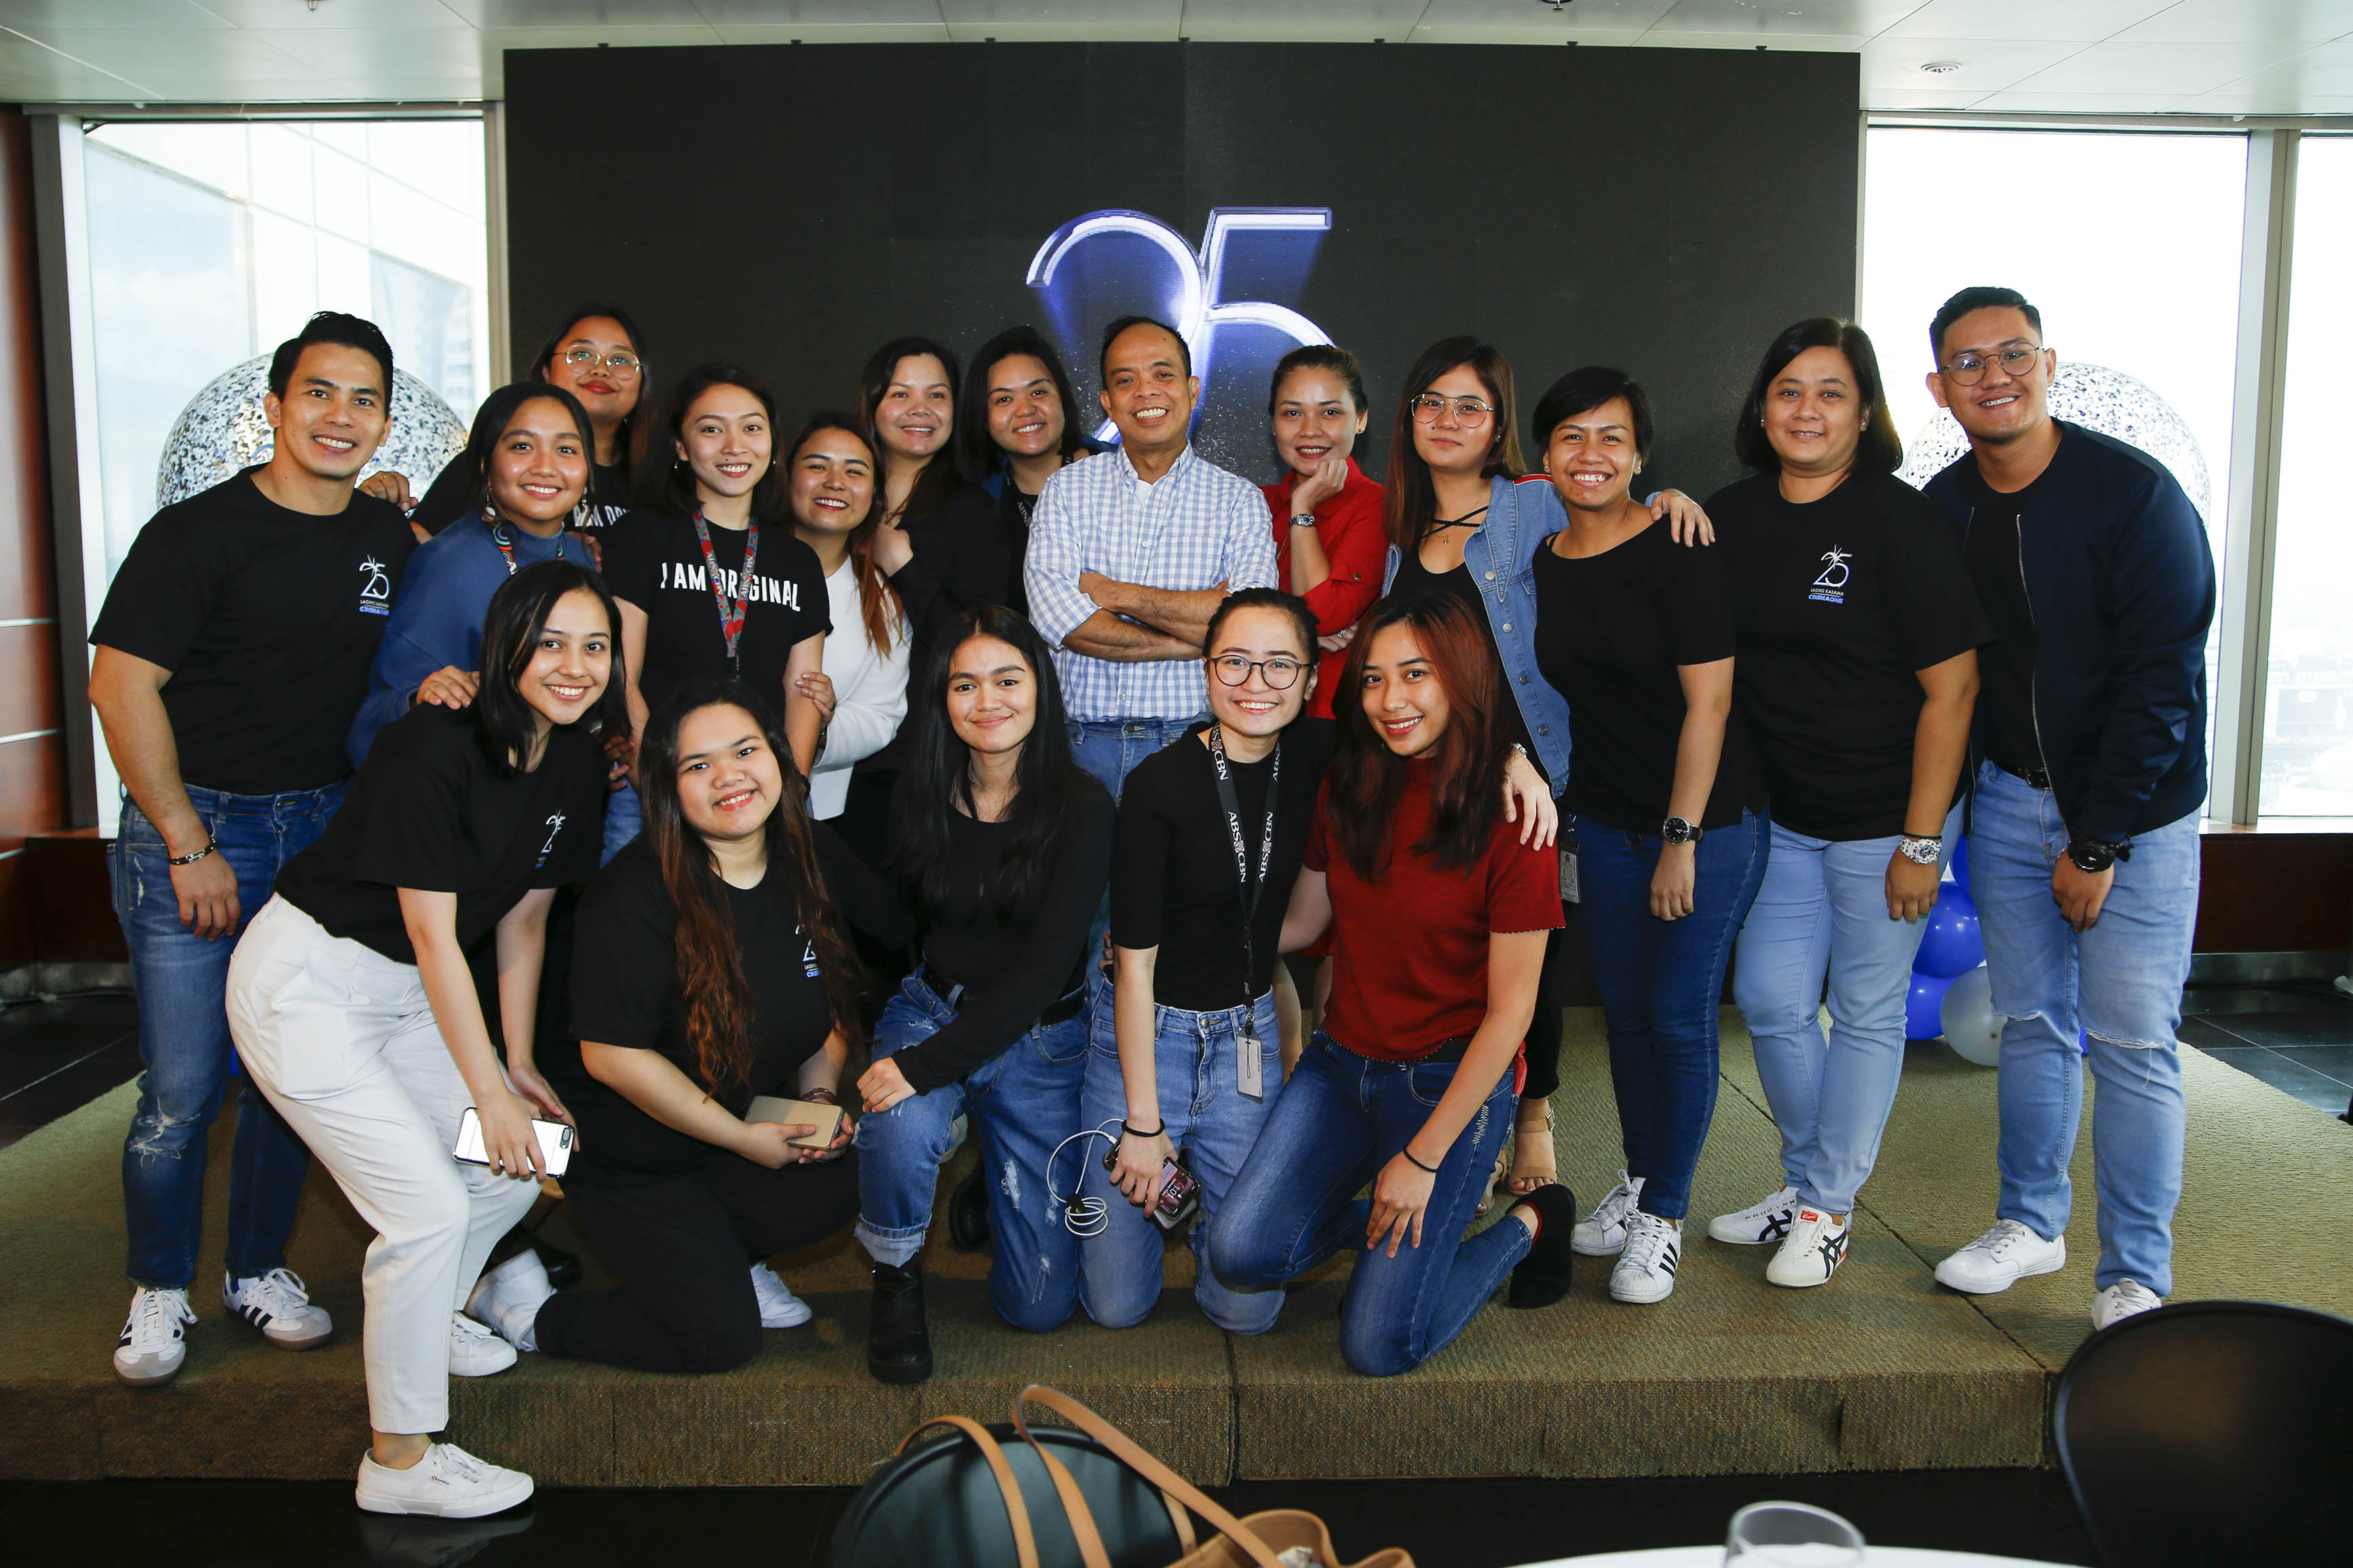 Meet the Team of CinemaOne